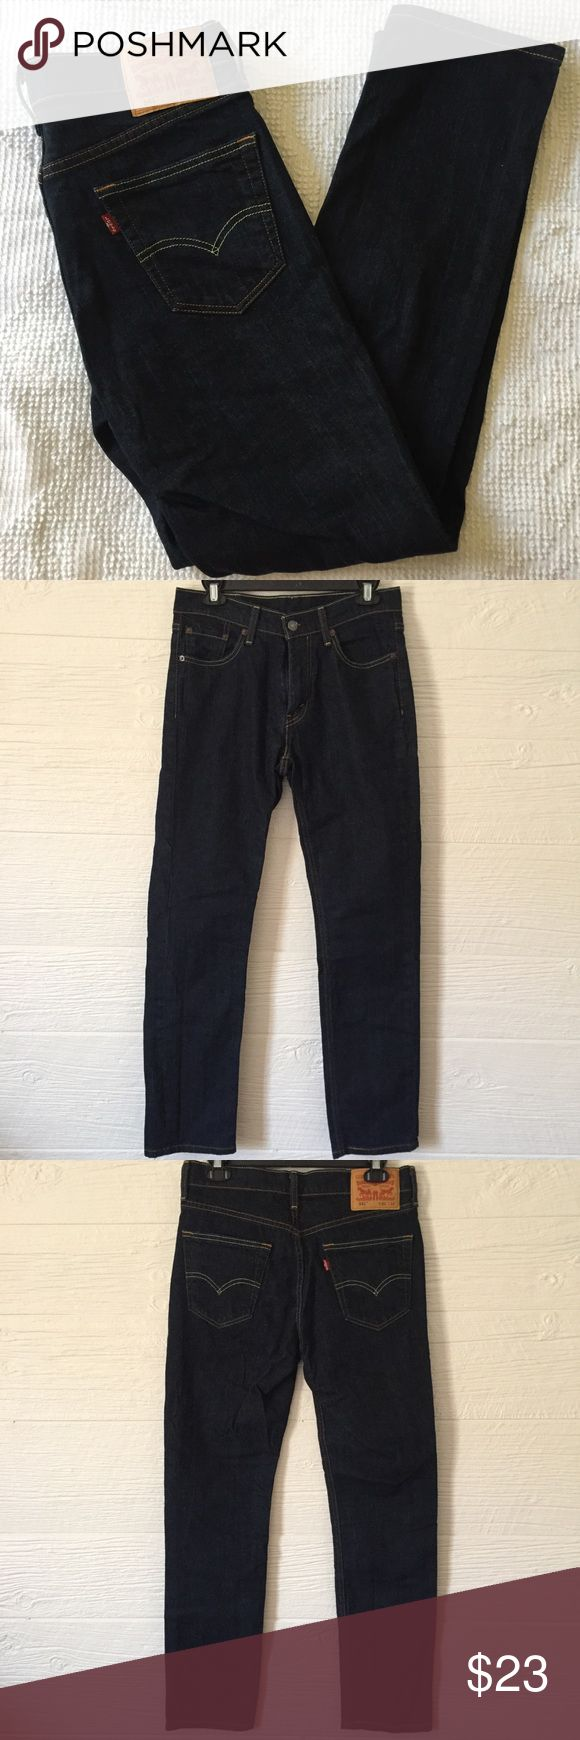 Levi Strauss & Co. 541 Straight Leg, High Waist Levi Strauss & Co. 541 Straight Leg, High Waist Jeans NWOT  30x32 Nice pair of jeans!  Dark blue and zip up. What didn't work for me will be awesome for you. Levi's Jeans Straight Leg